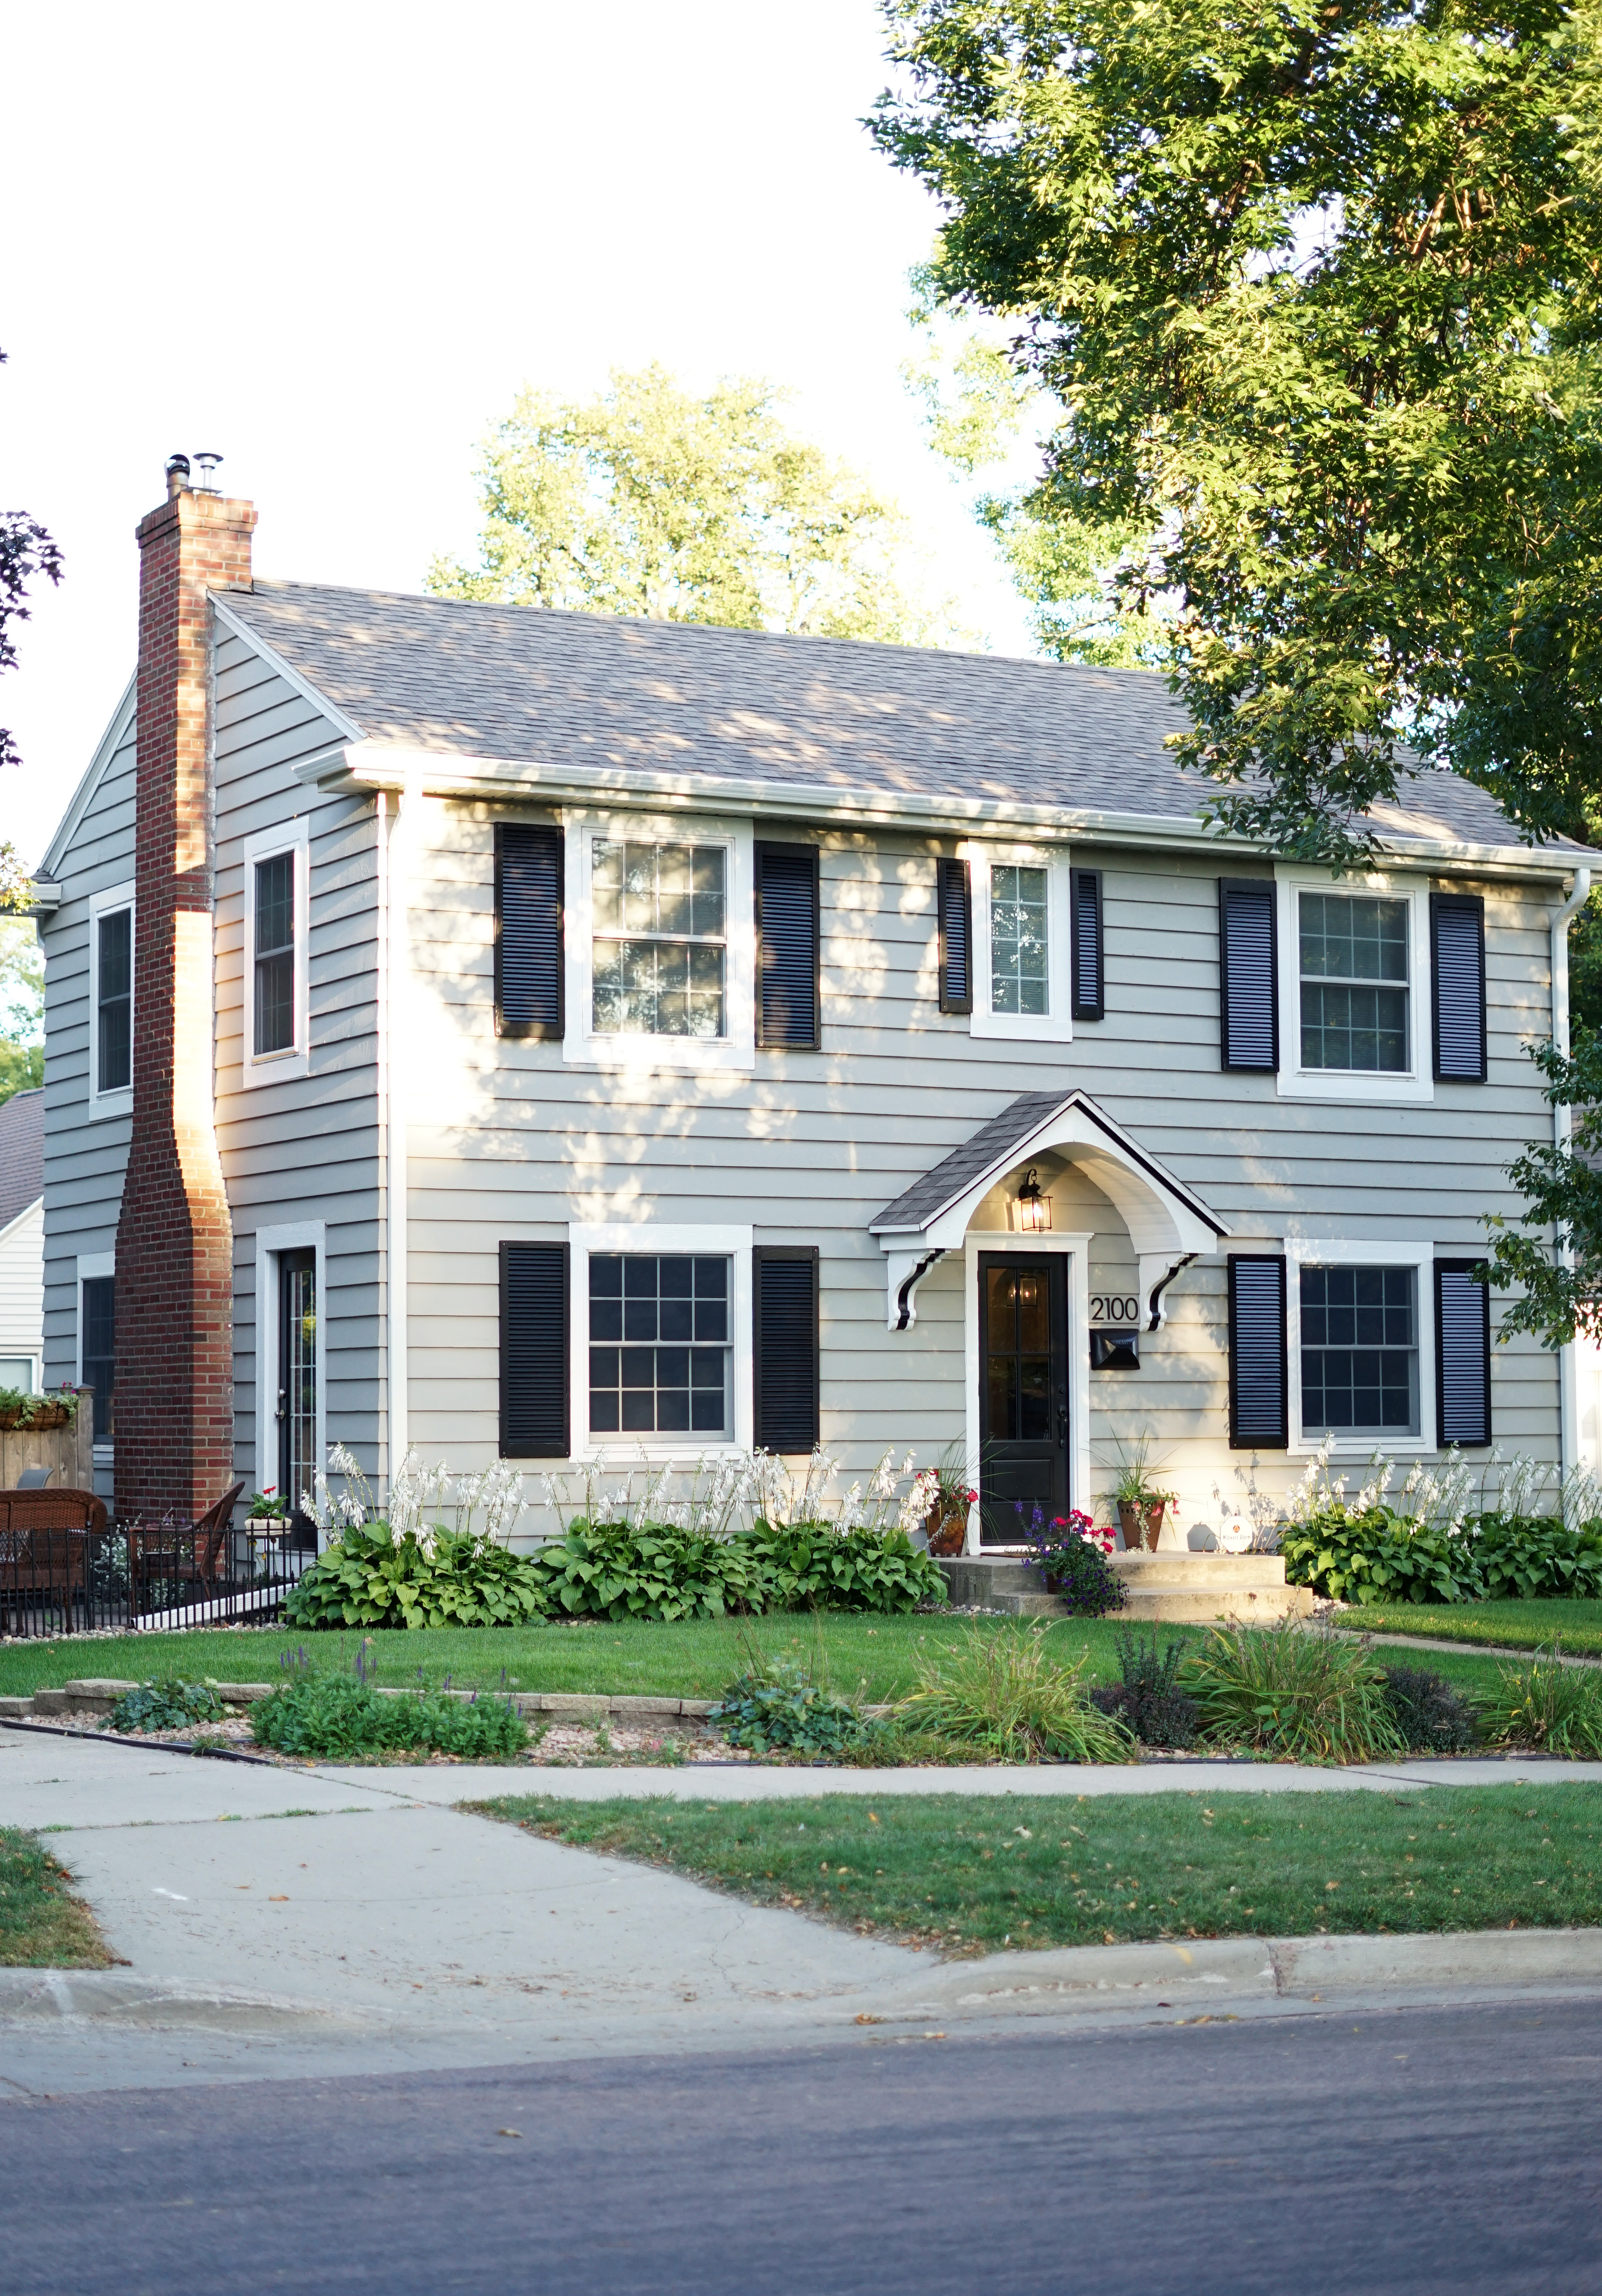 Home exterior transformation midwest in style House transformations exterior